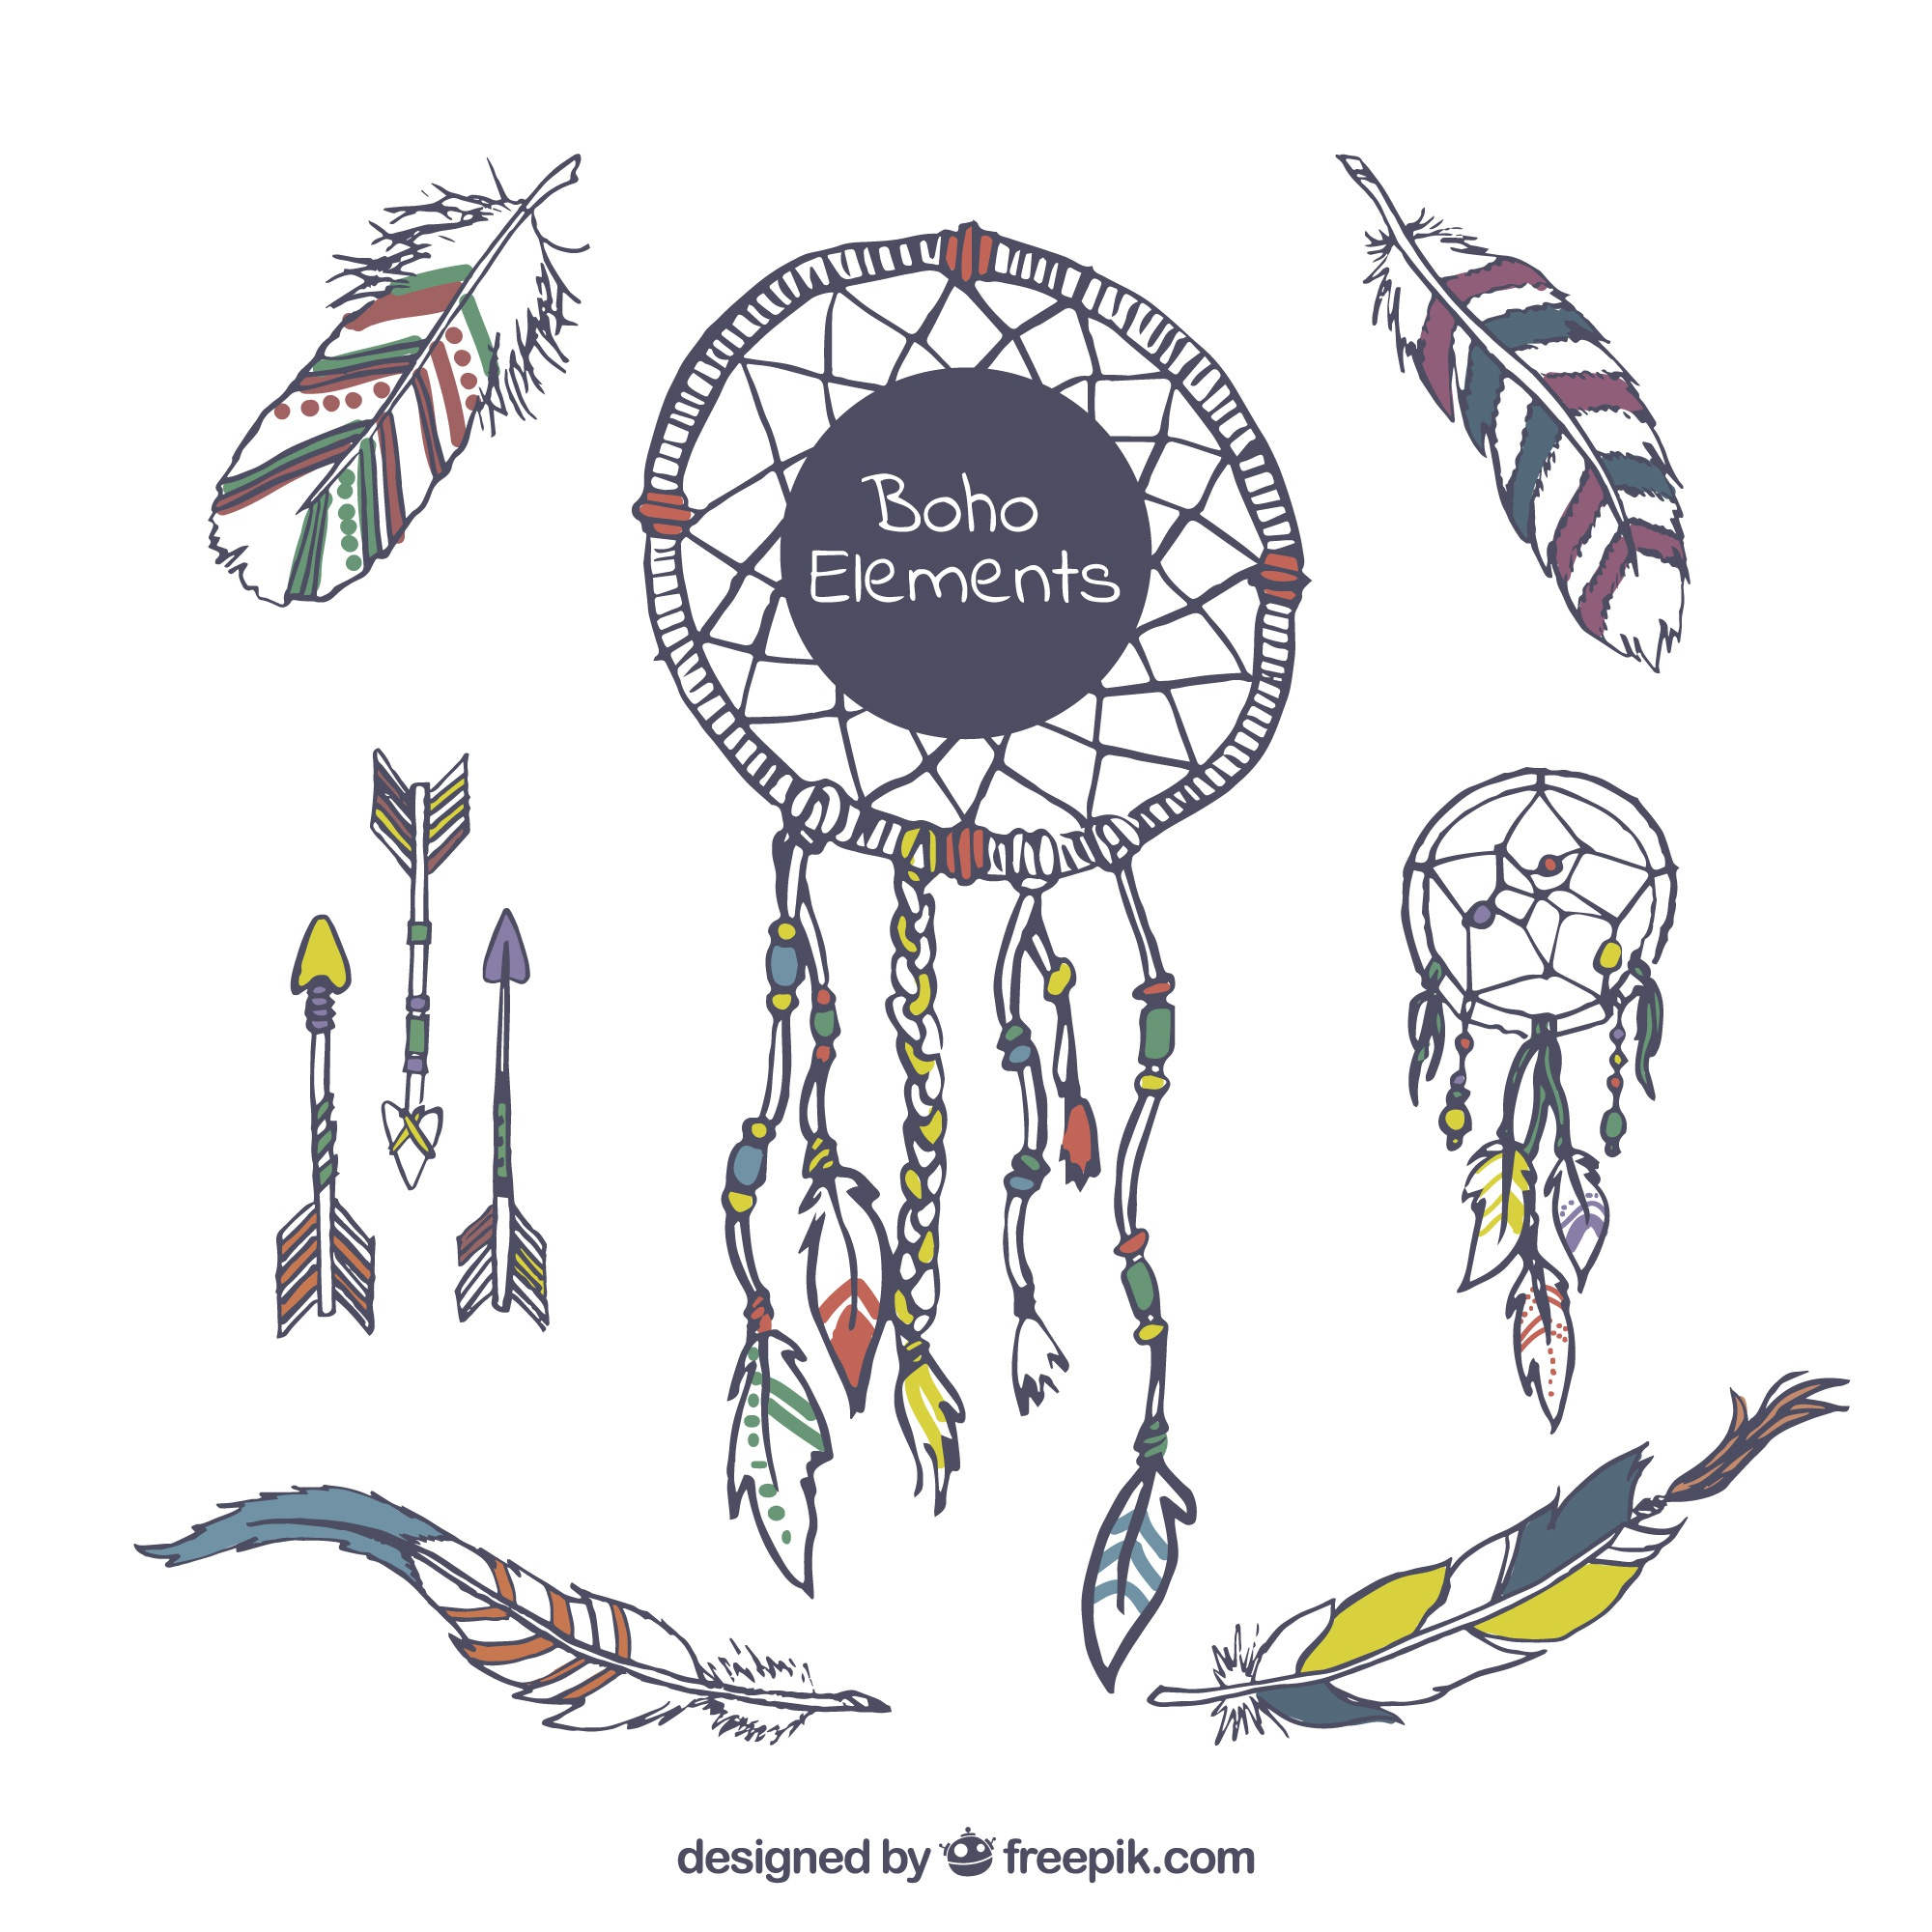 Selection of hand-drawn objects in boho style